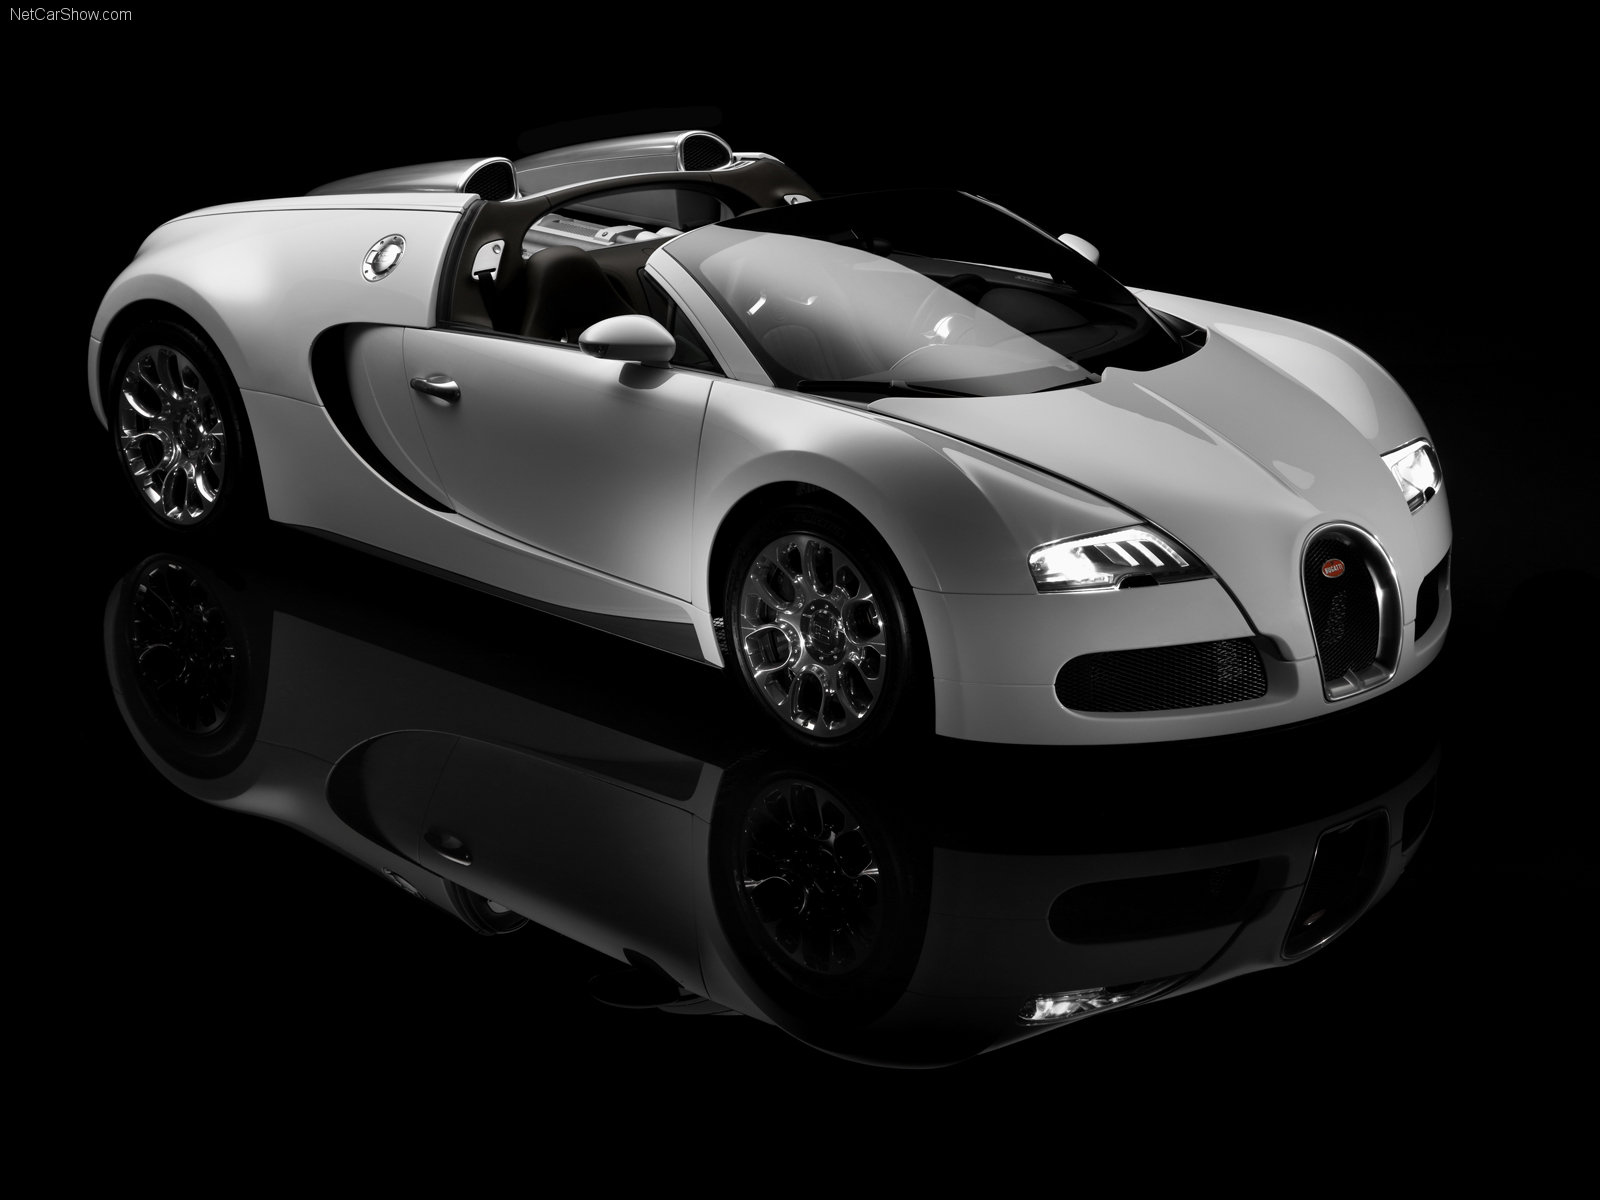 Bugatti Veyron white supercar wallpaper HD Only   Wallpapers 1600x1200